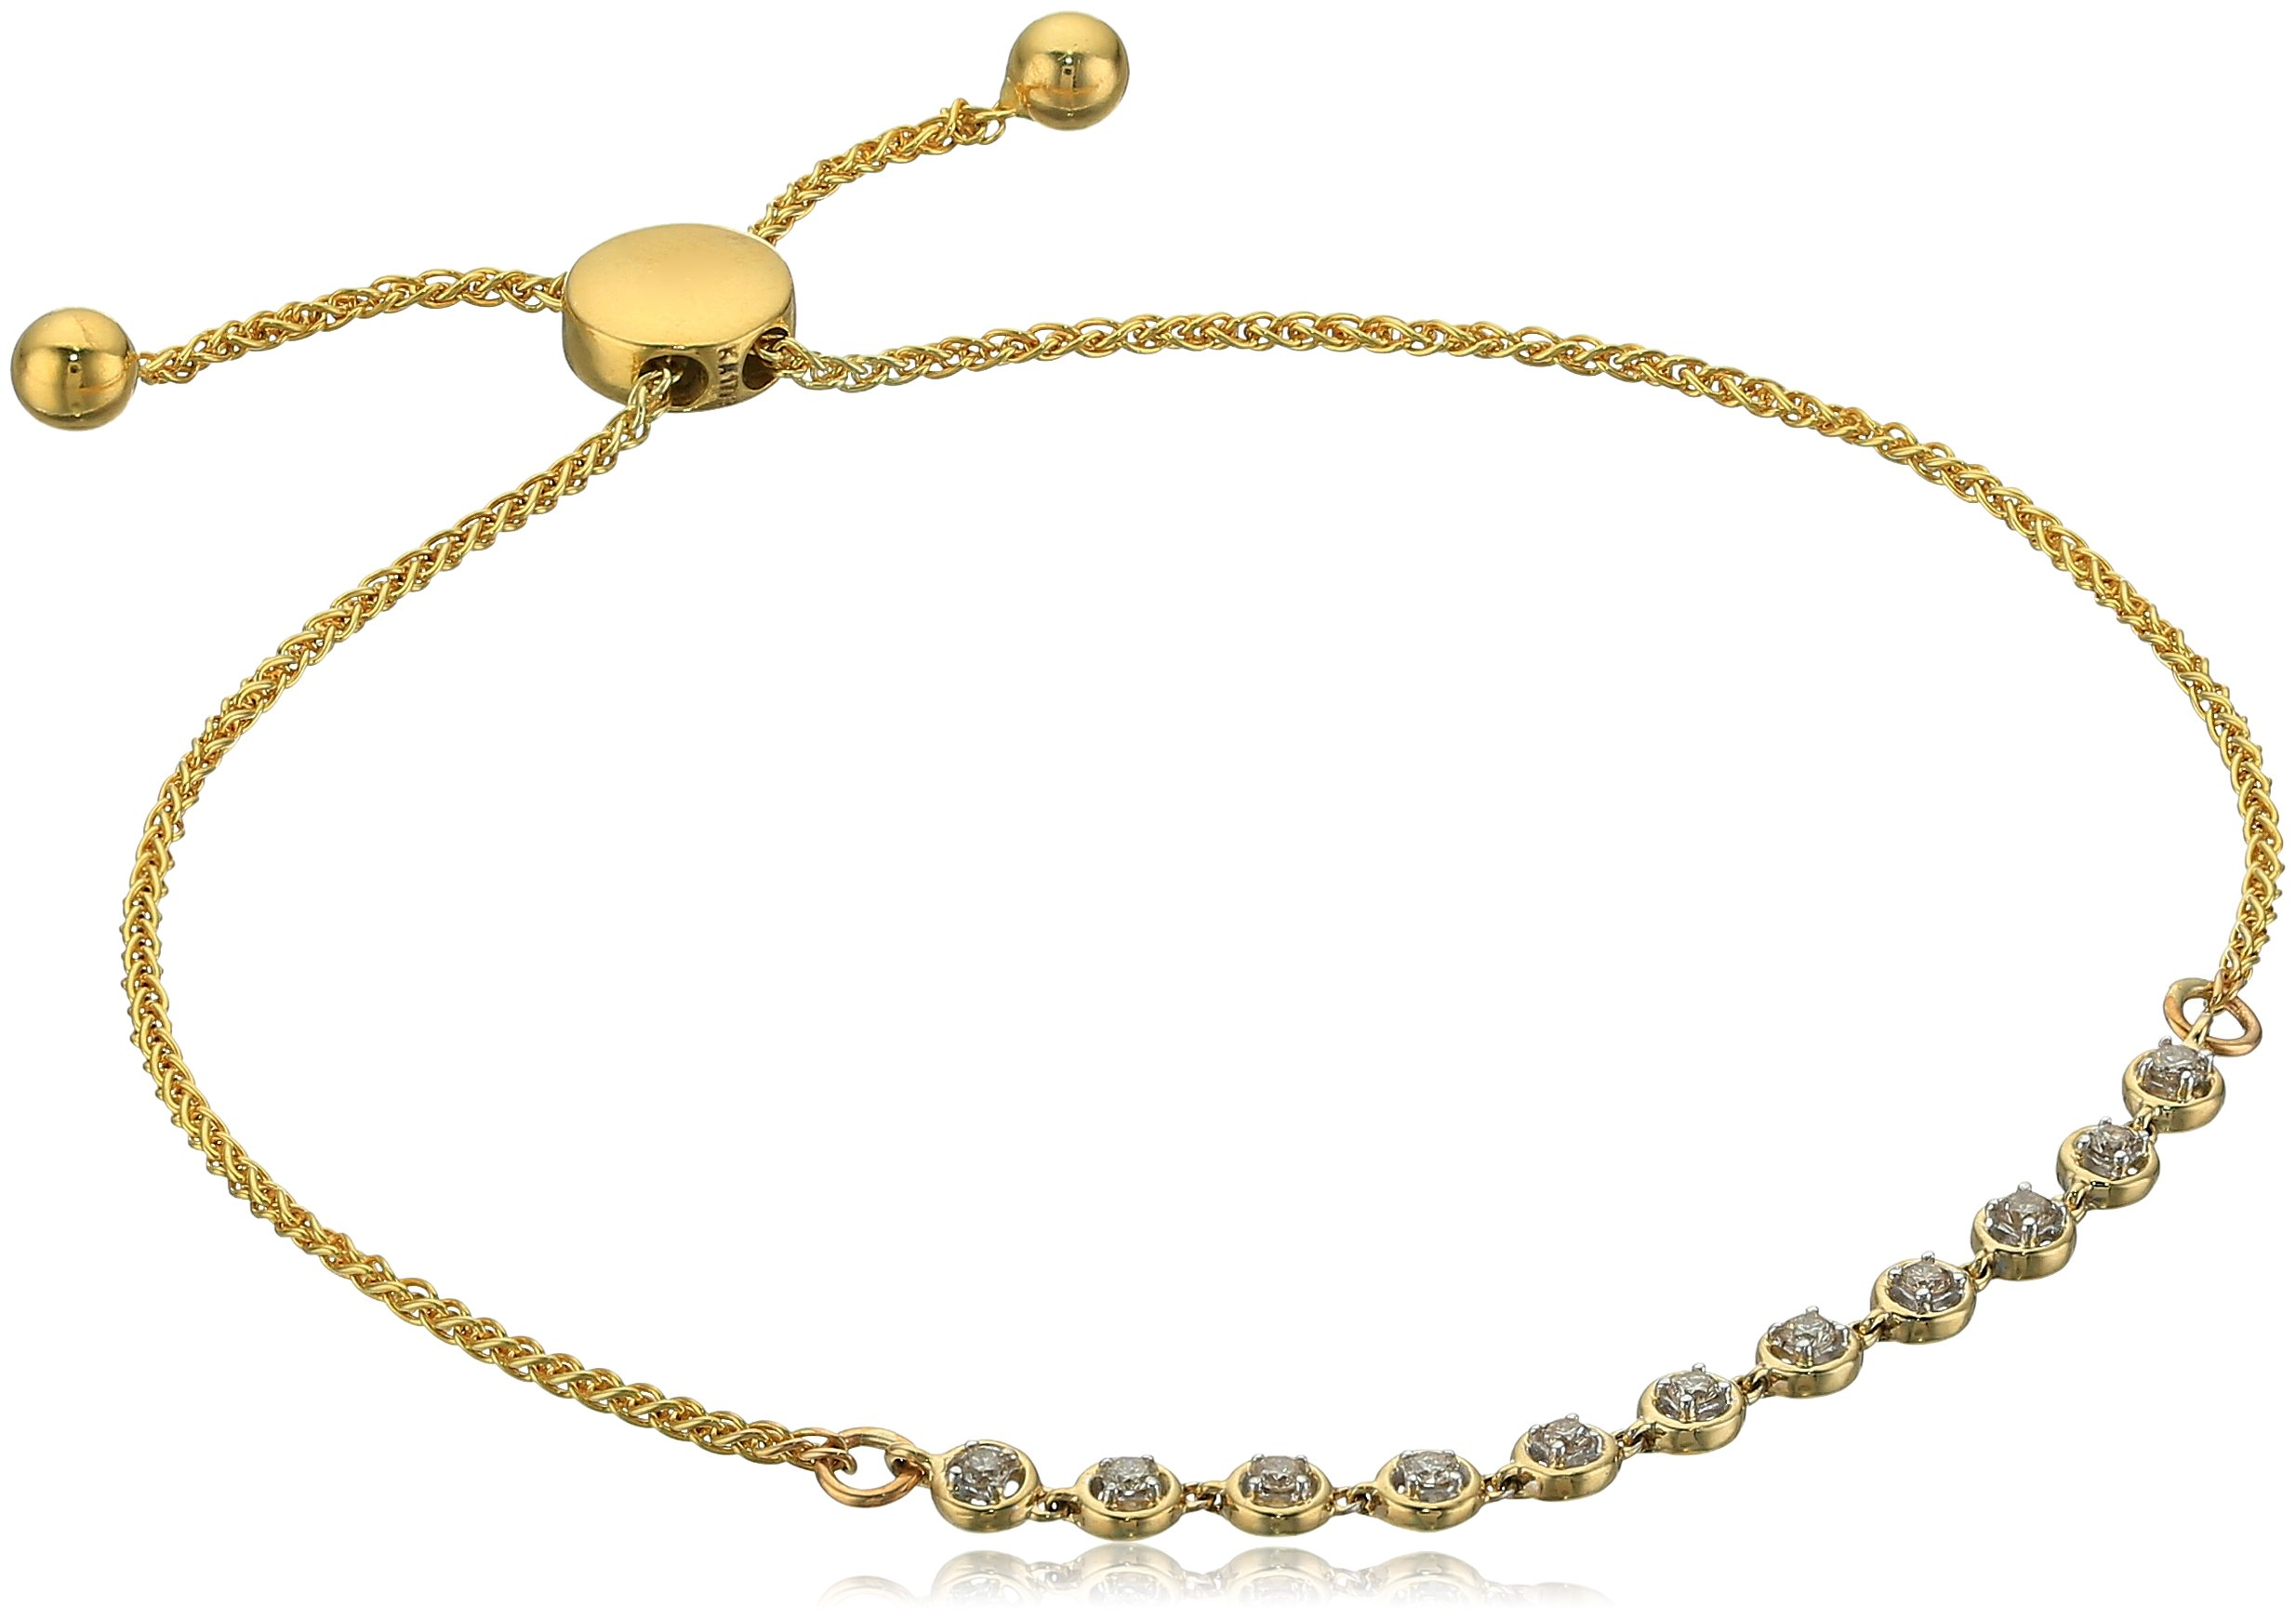 10k Yellow Gold Diamond Bracelet, Size 7.5 Inches by Amazon Collection